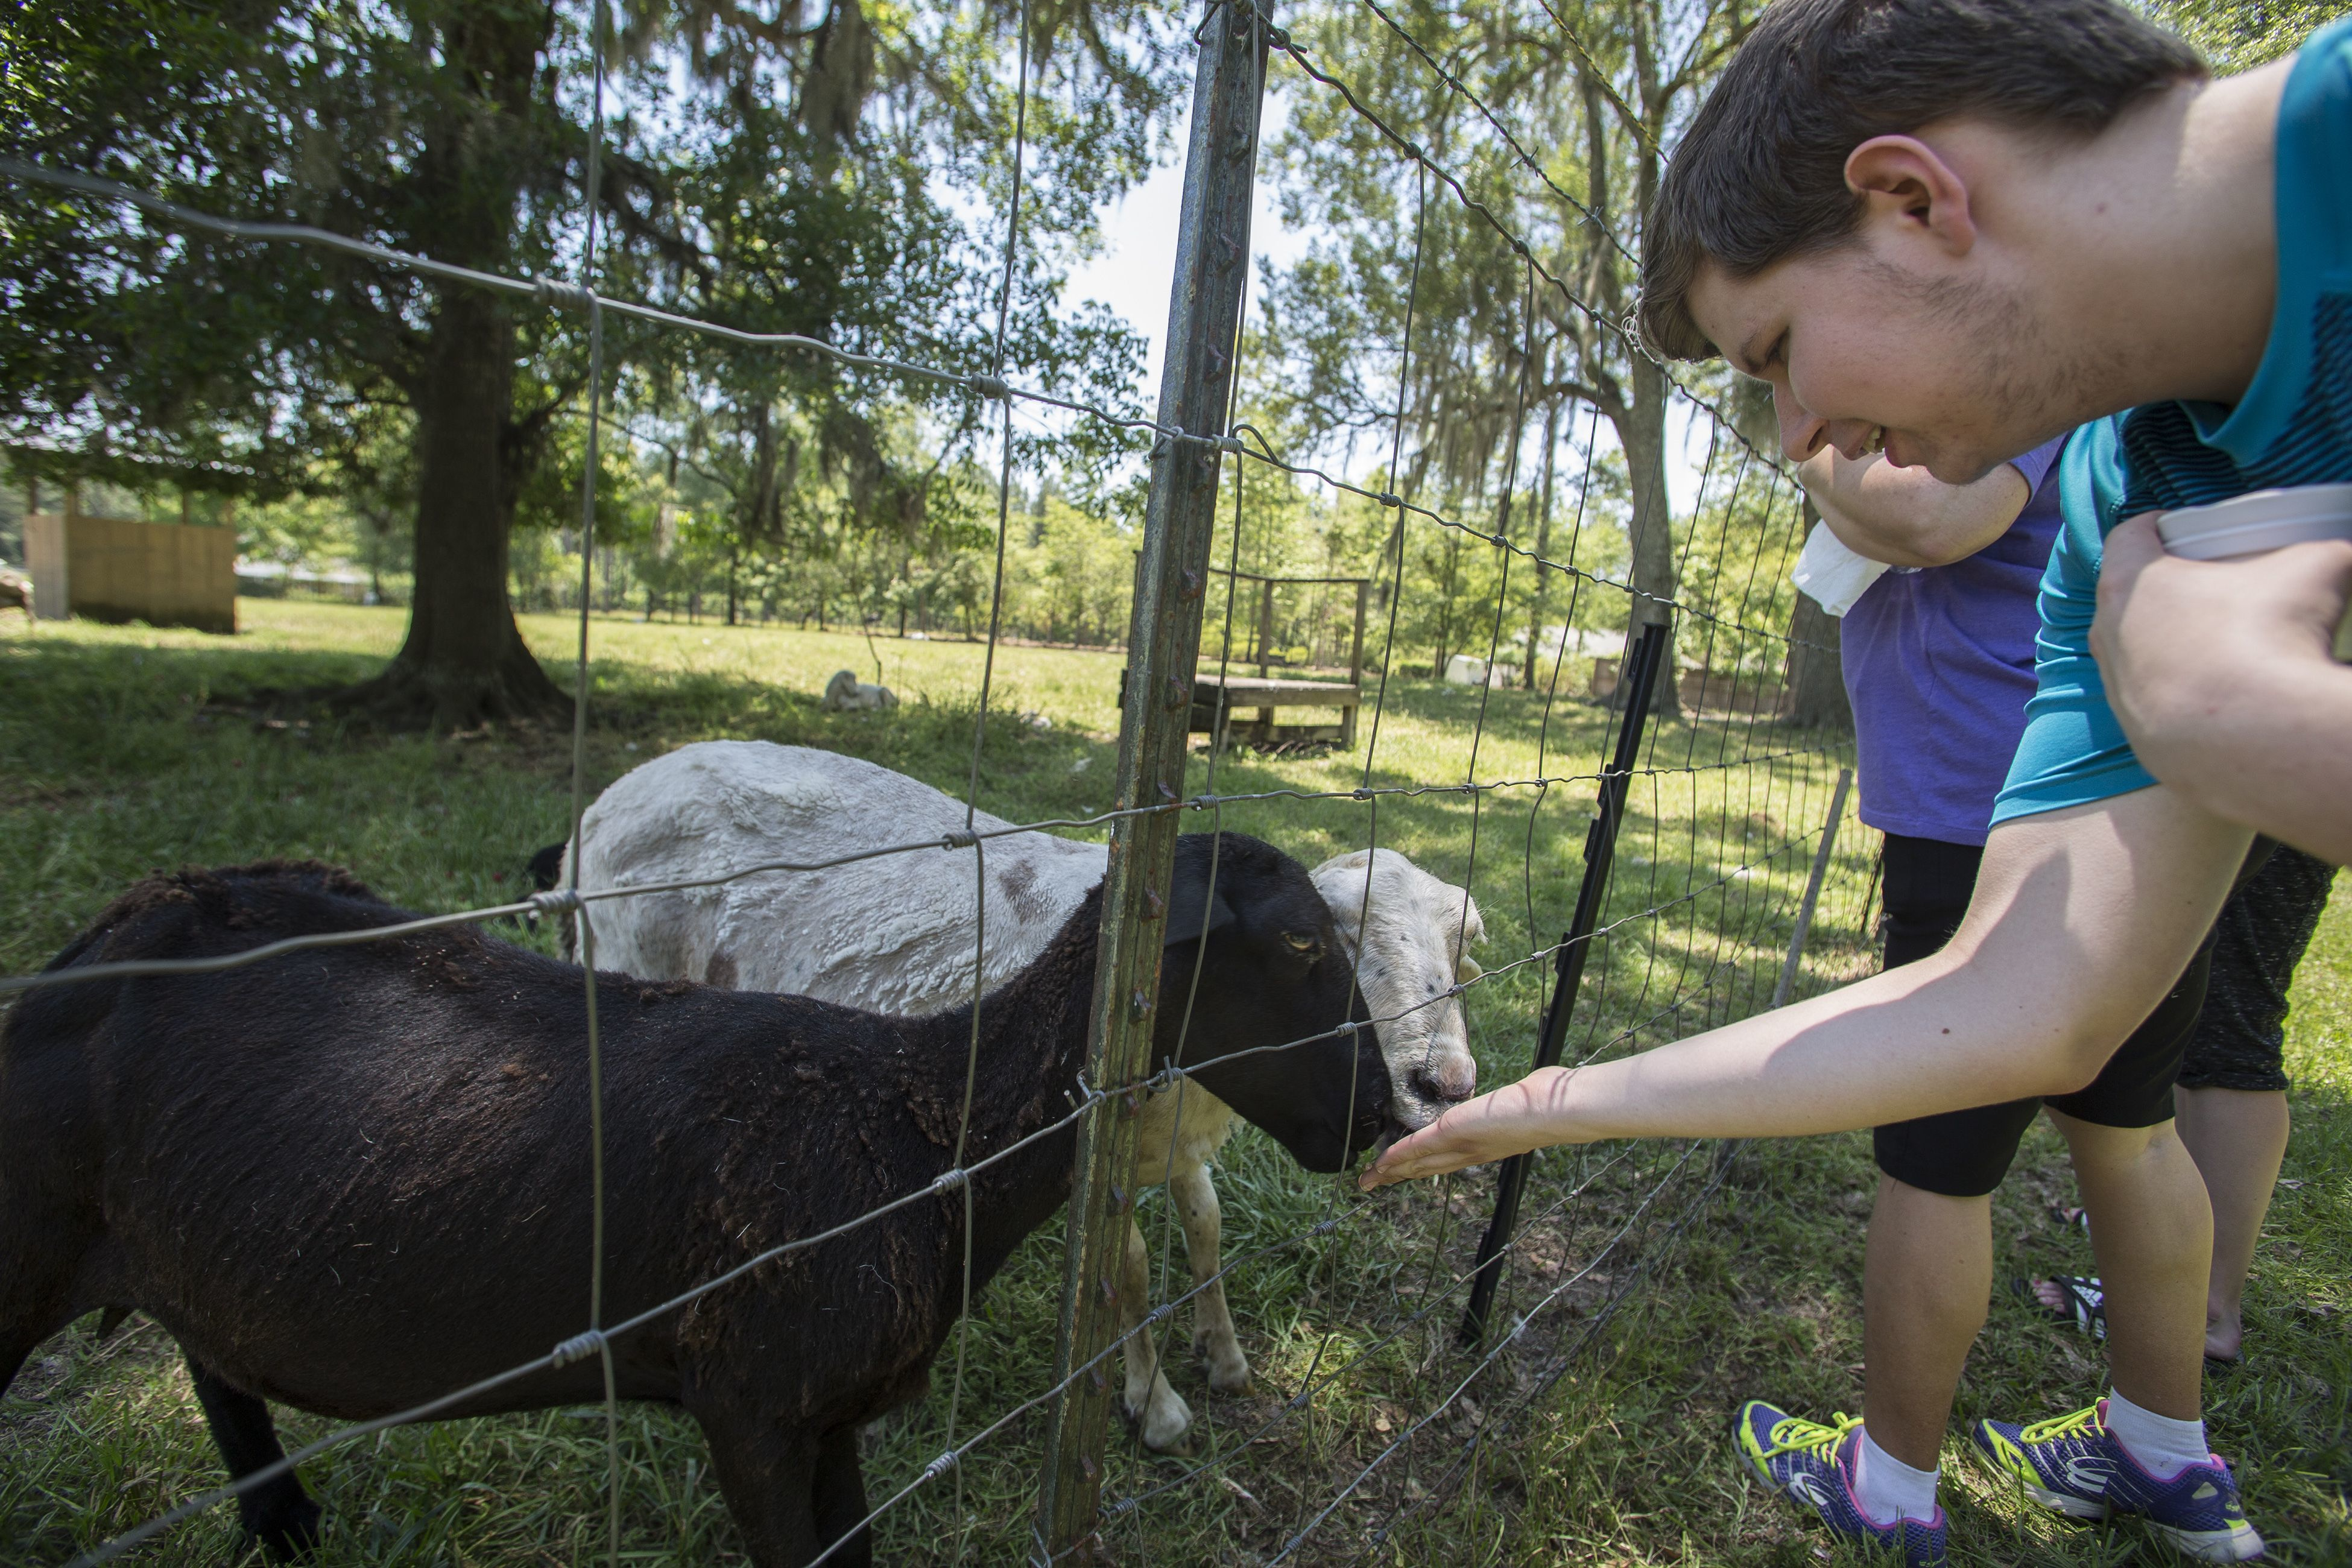 Visitors check out the katahdin sheep at Golden Acres Farm.